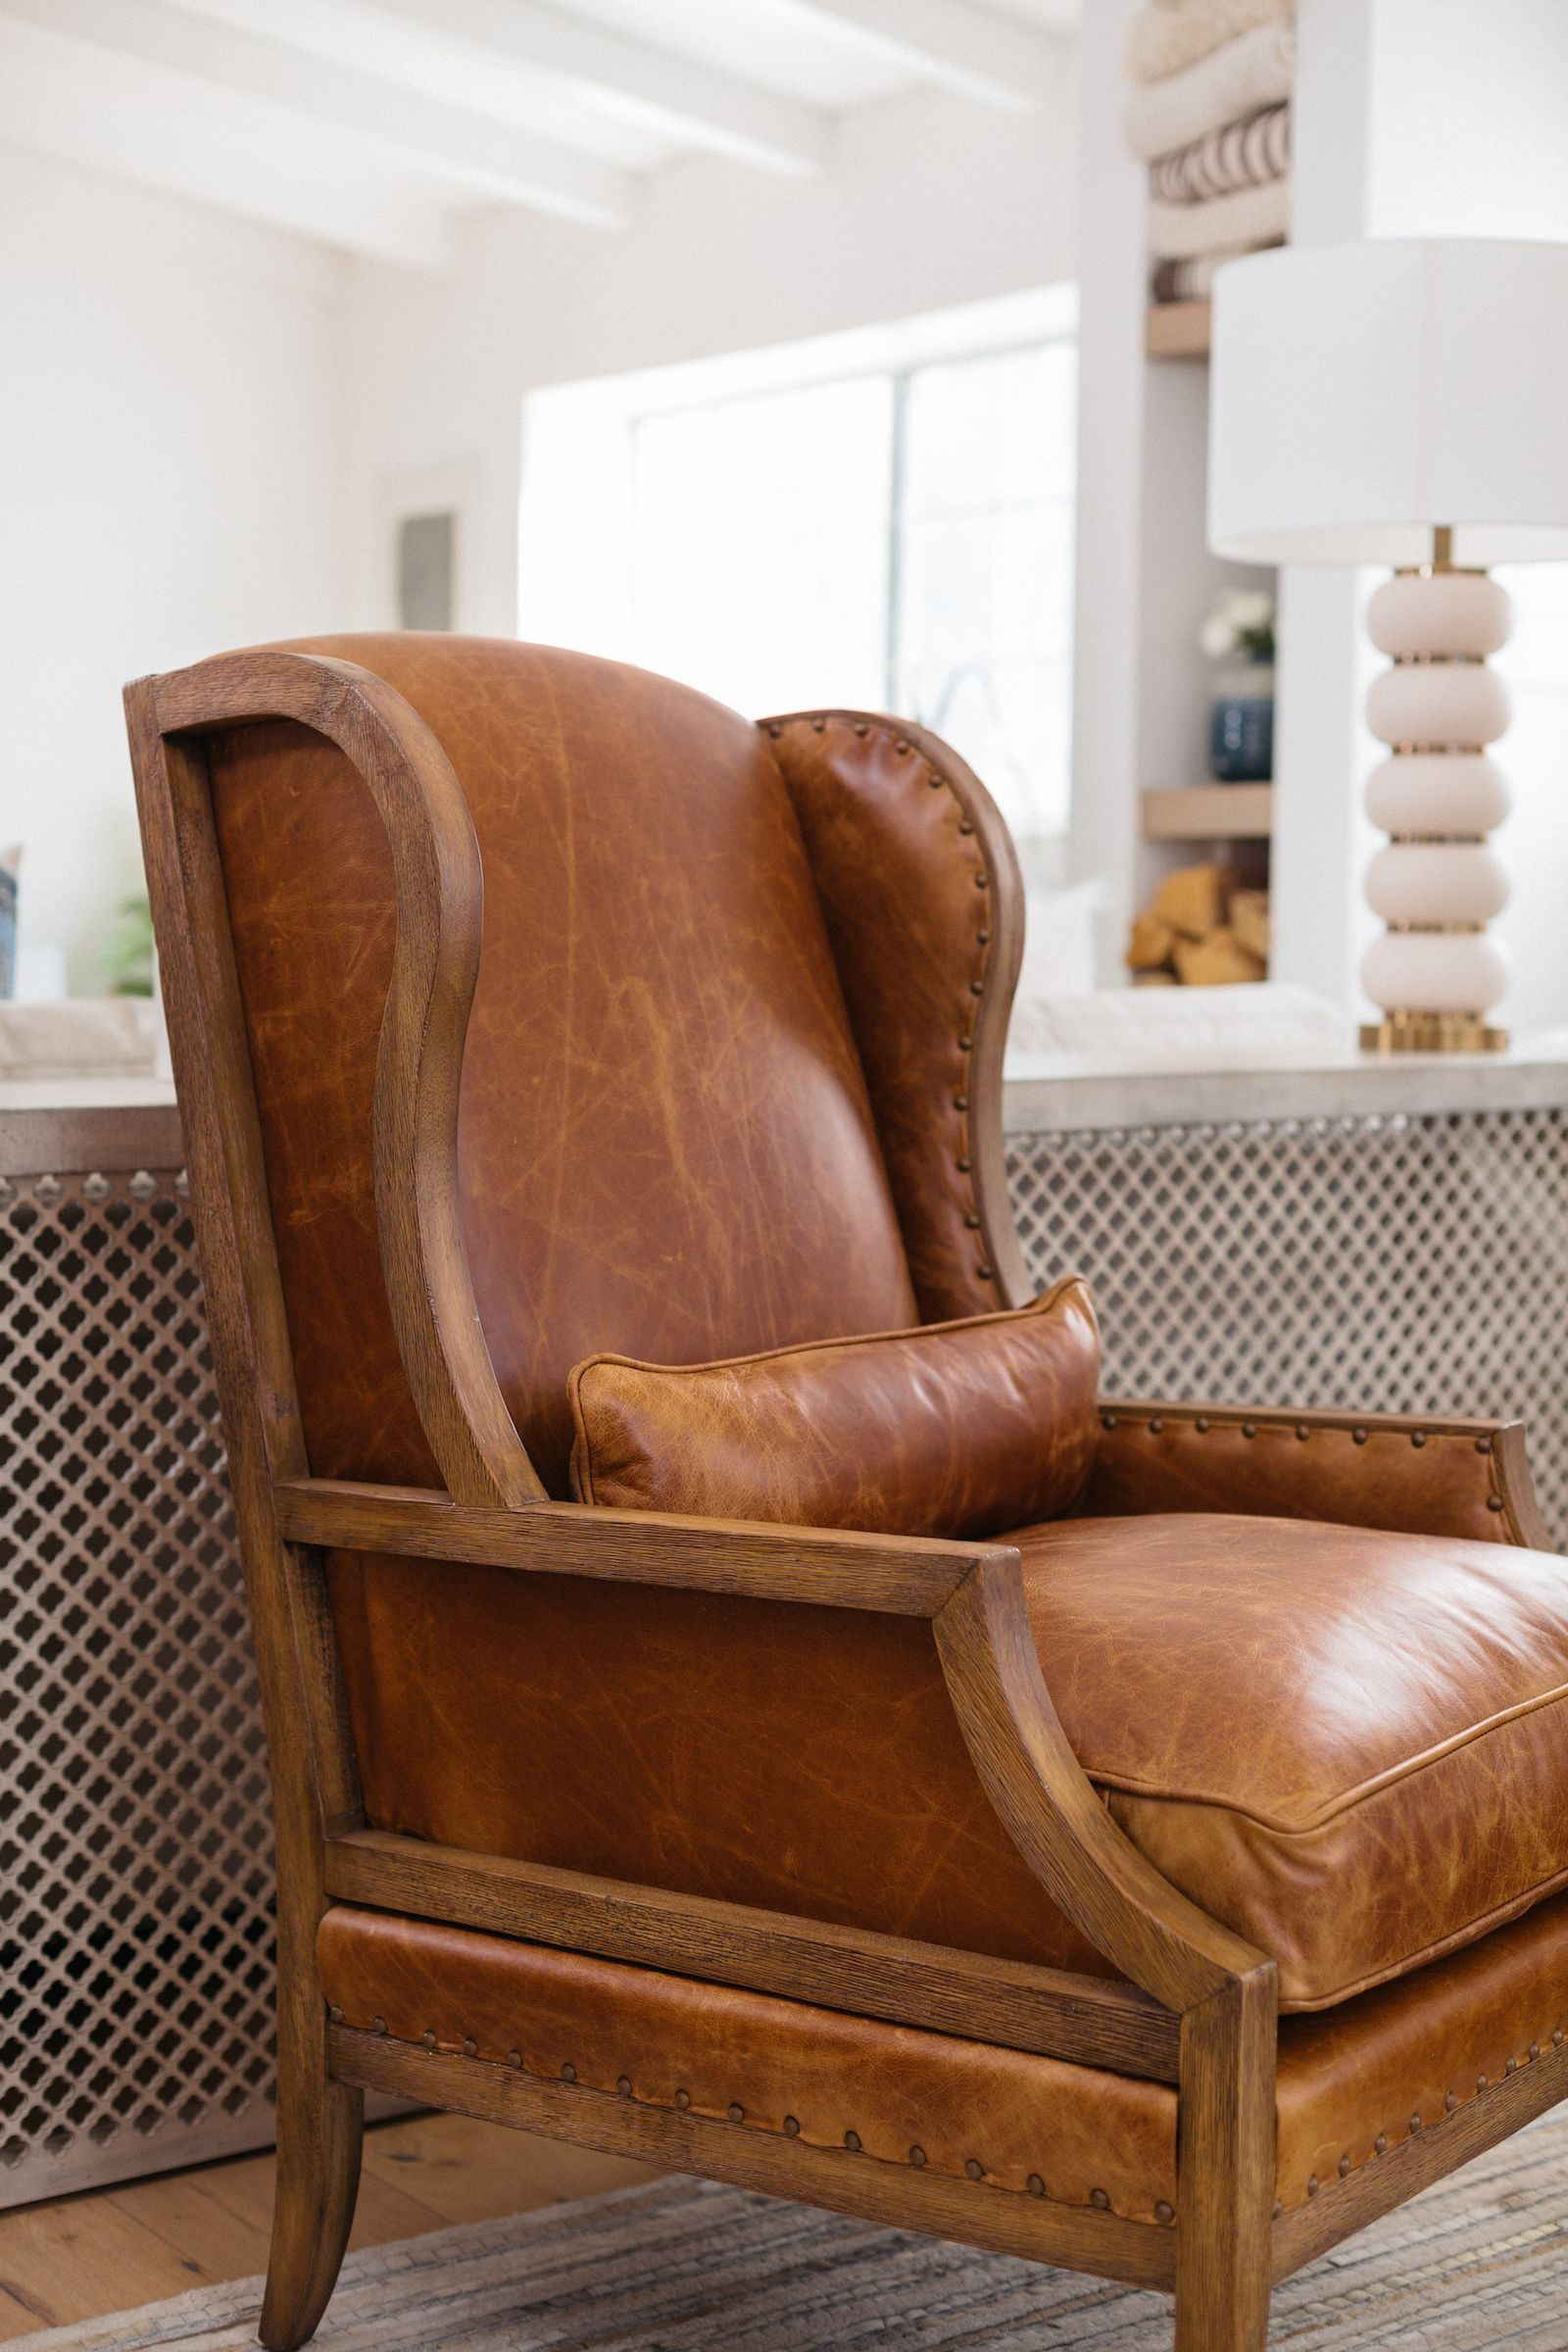 Ford Leather Swivel Chairs Modern Accent Lounge Chairs Modern Living Room Furniture Room Board Leather Swivel Chair Modern Furniture Living Room Leather Chair